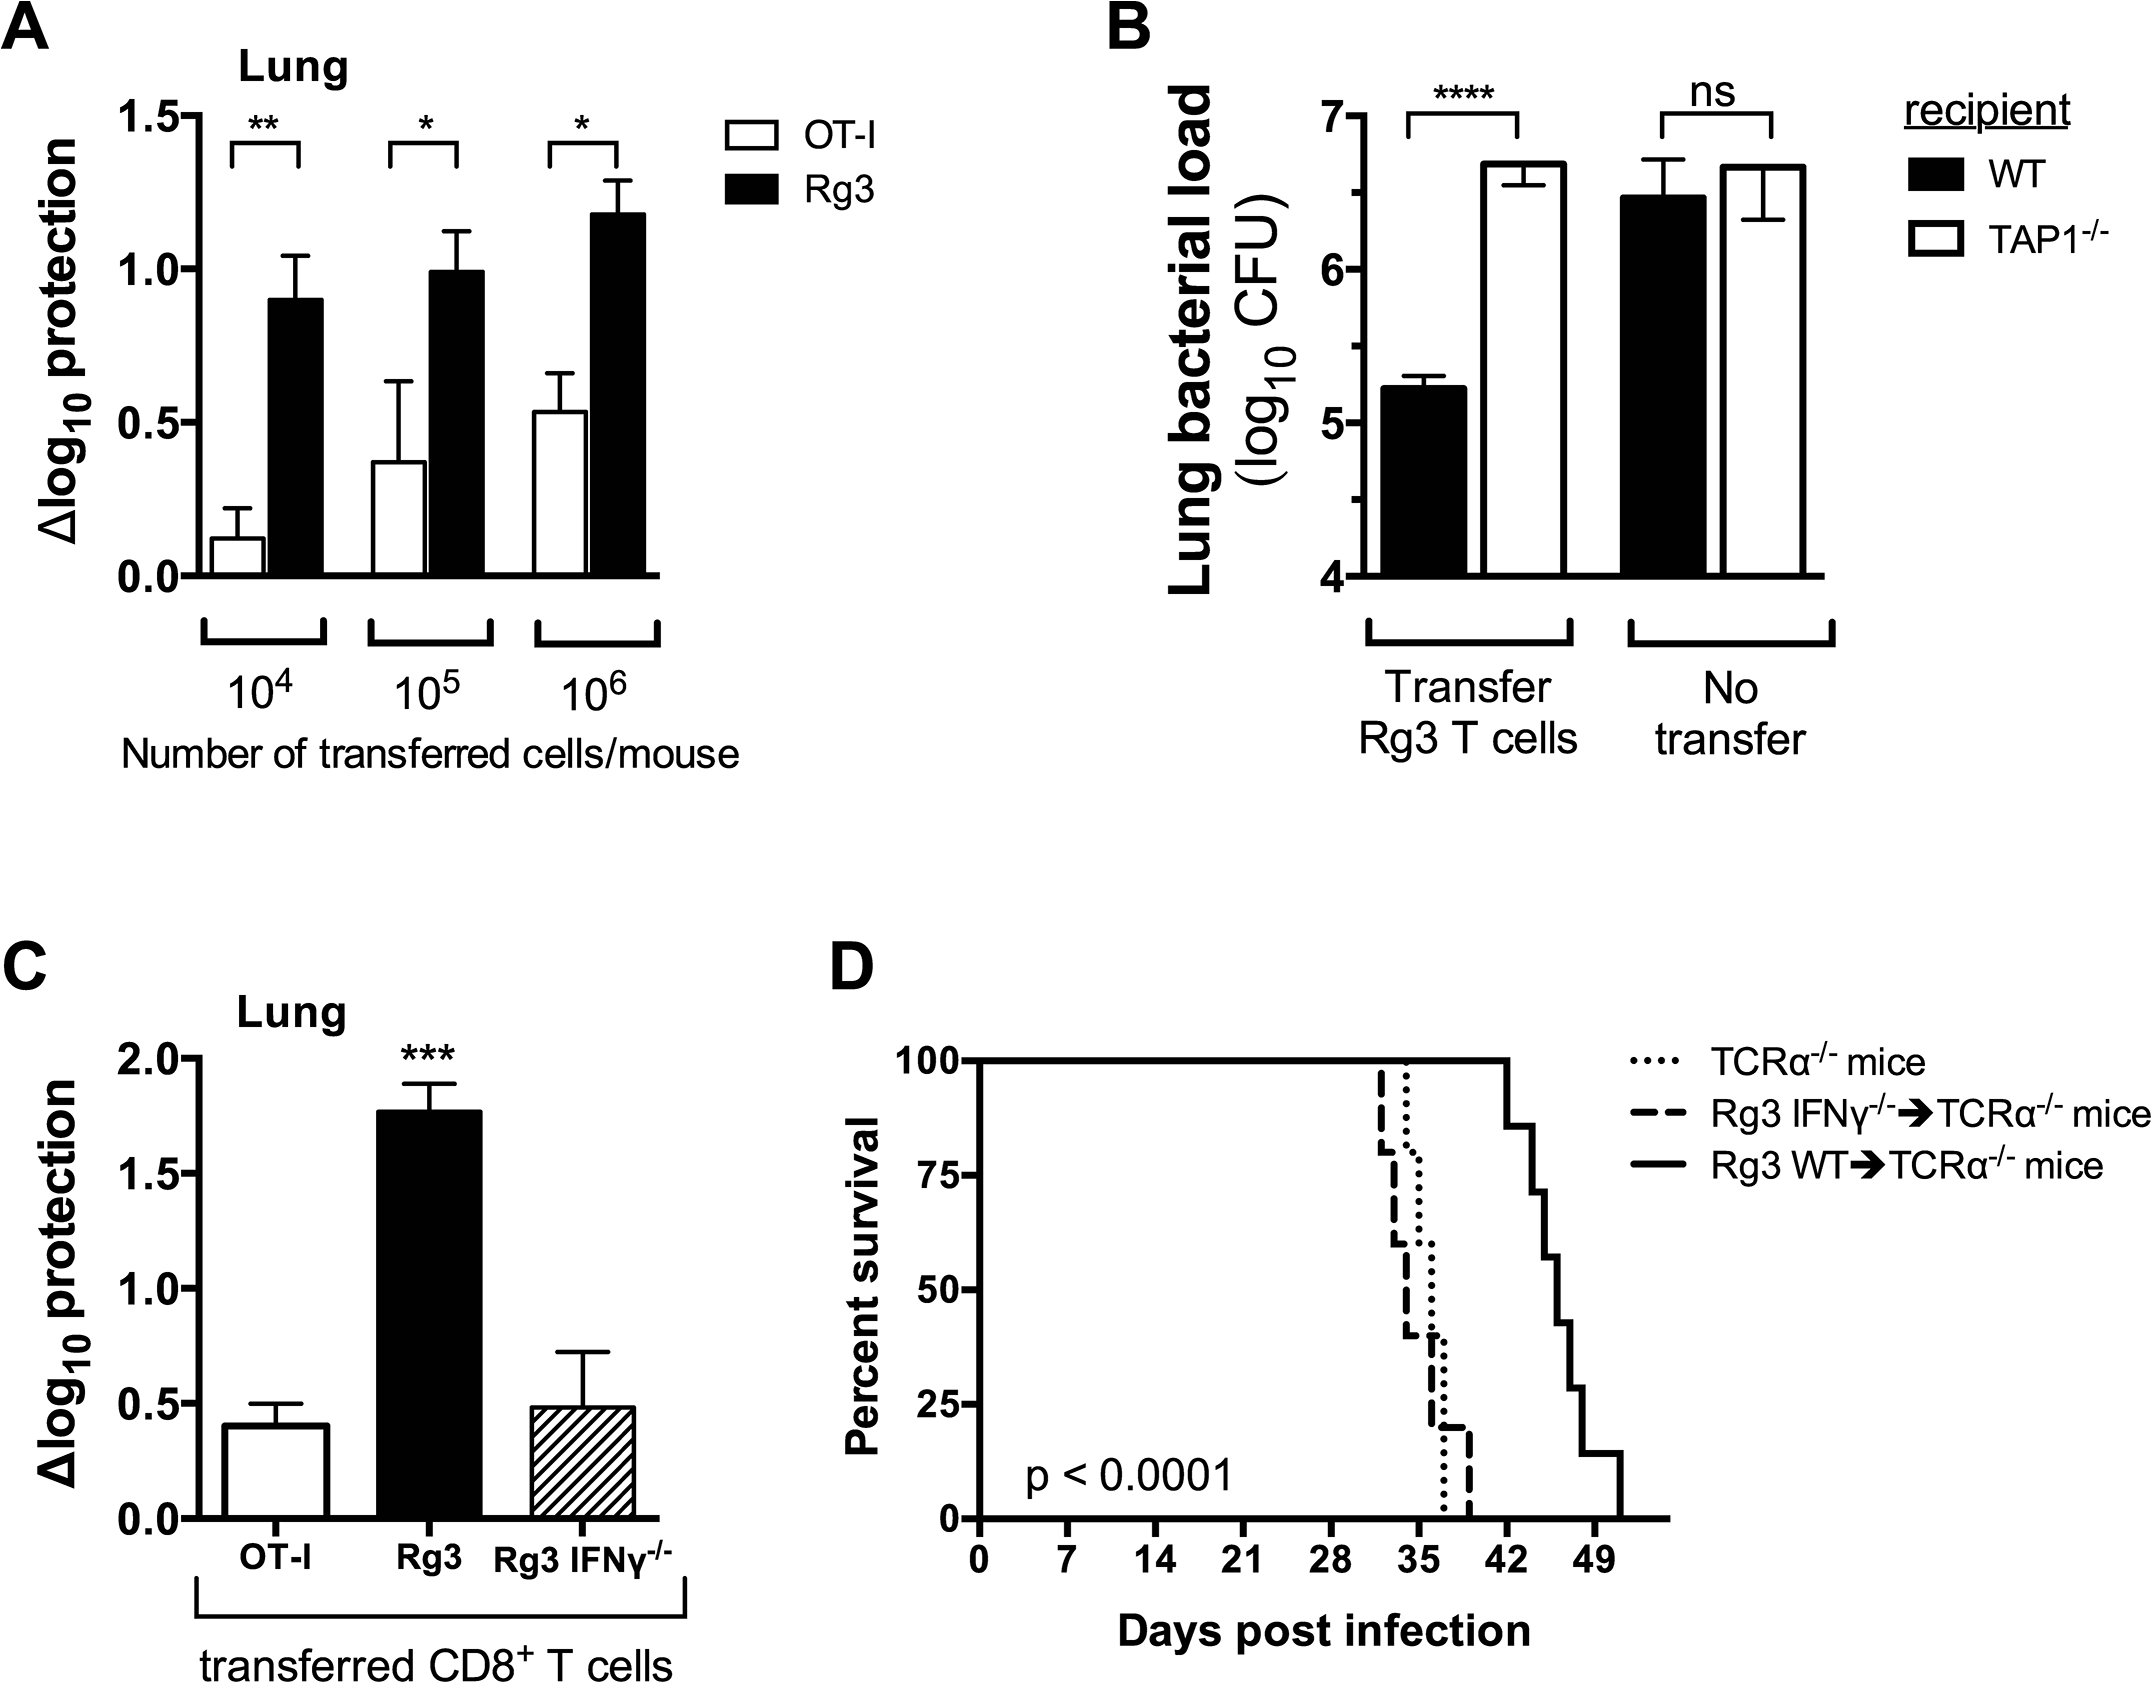 TAP1 and IFNγ are required for protection mediated by TB10-specific CD8+ T cells.